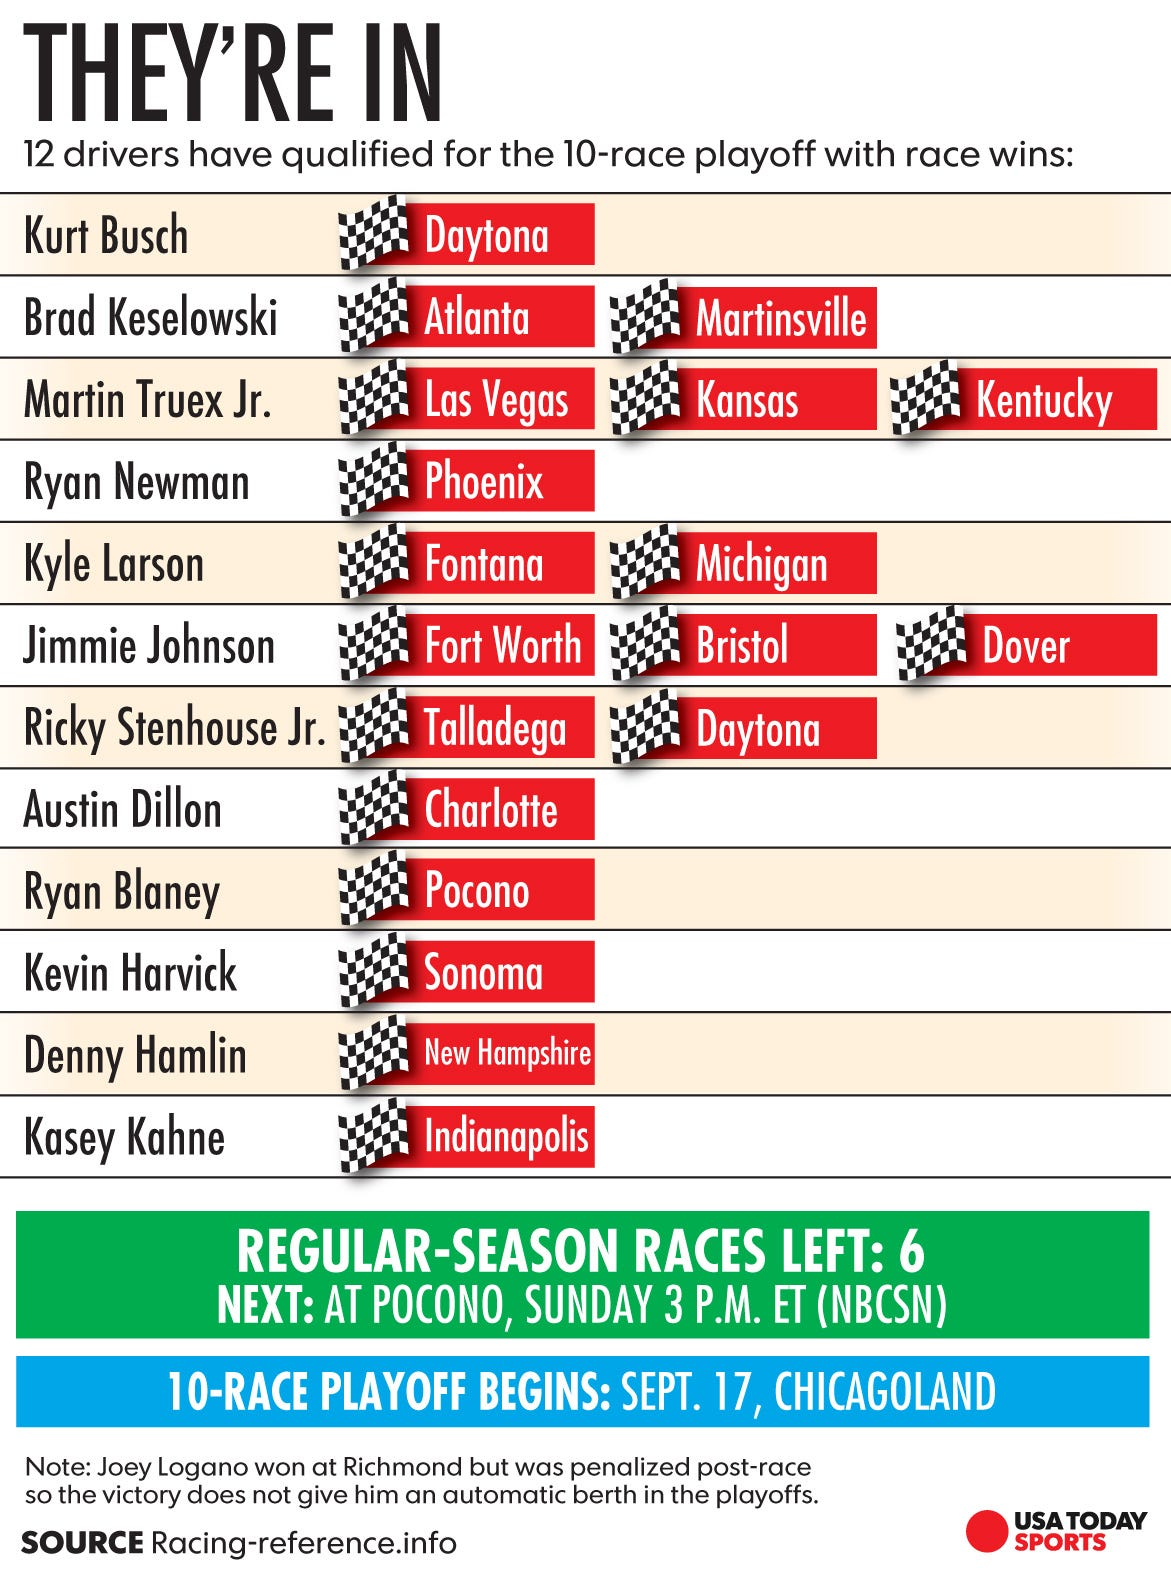 playoff hopefuls take hit the brickyard 400 shook up the points race in a major way as kahne became the 12th driver to clinch a spot in the playoffs with a